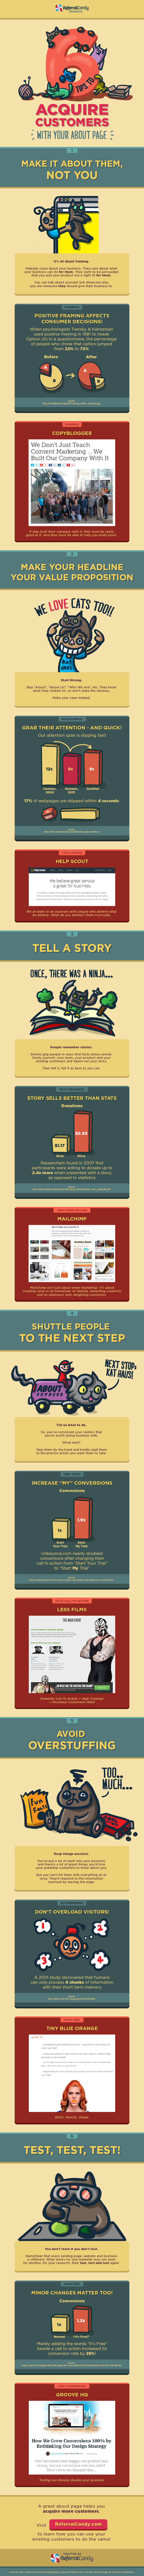 about page infographic